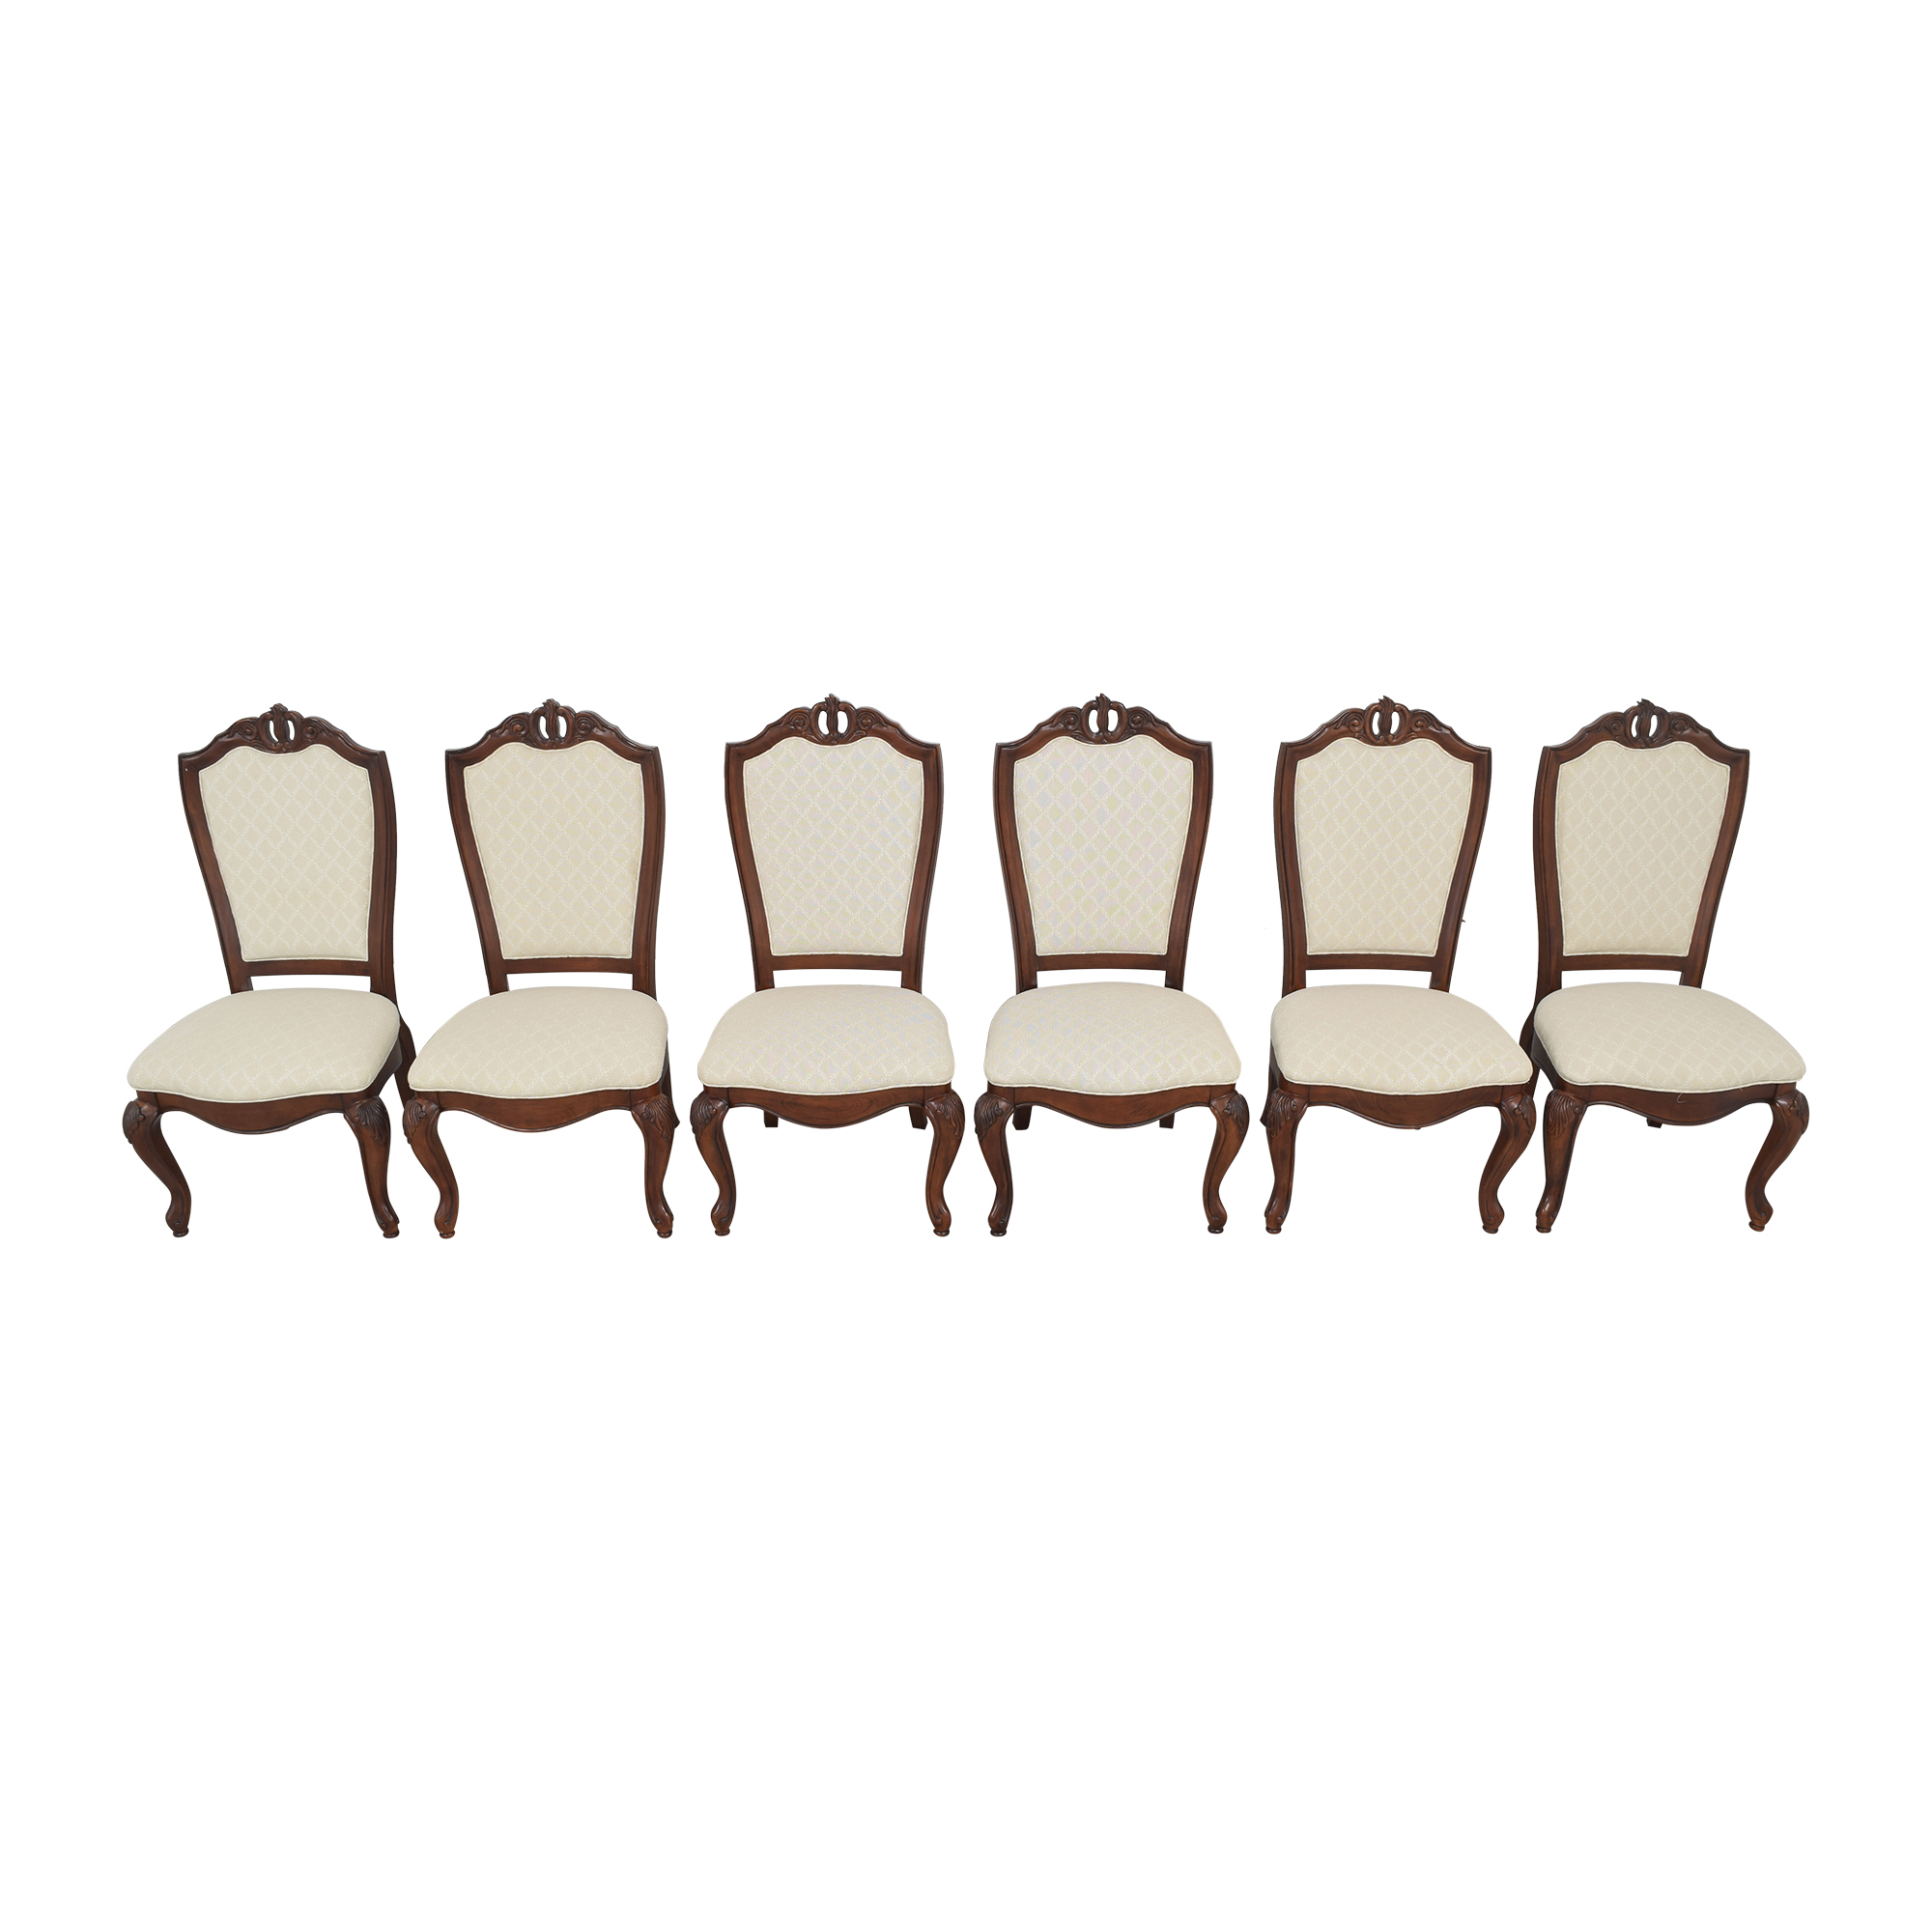 American Drew American Drew Upholstered Dining Chairs